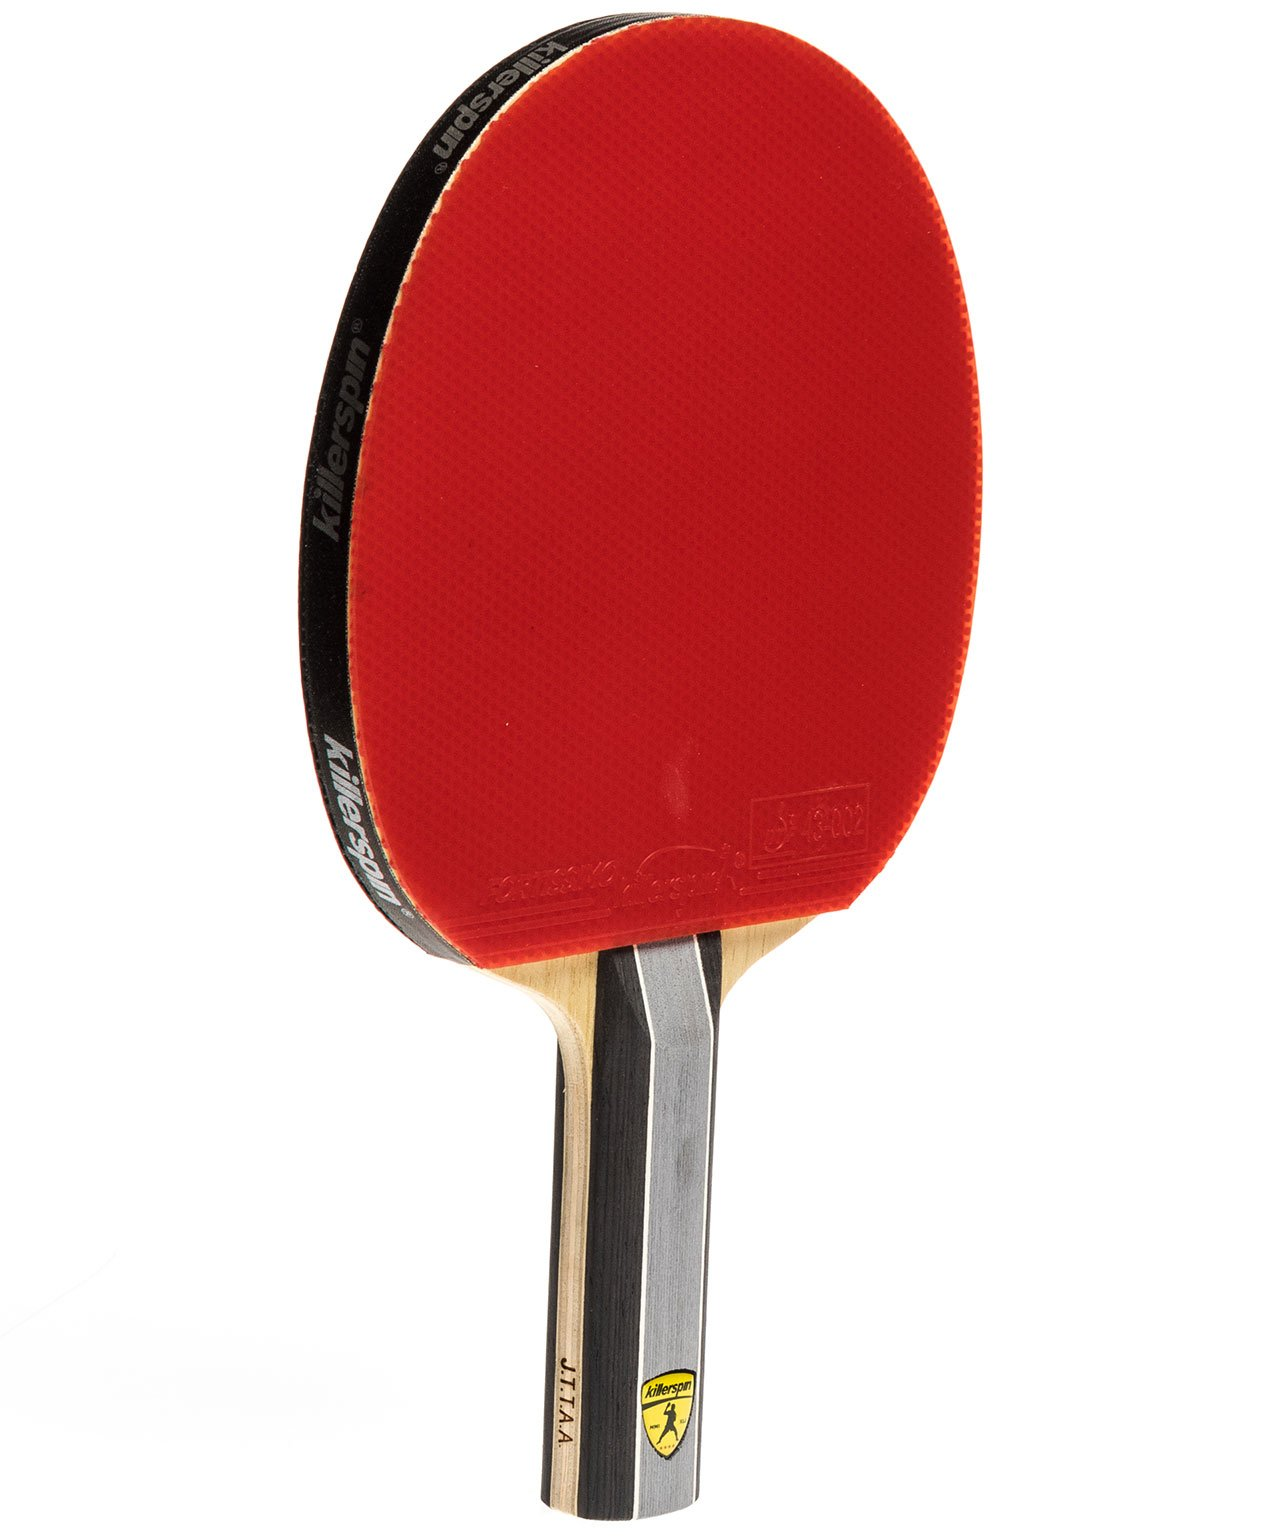 Killerspin Ping Pong Racket Kido 7P RTG Premium - Straight Red Fortissimo Rubber